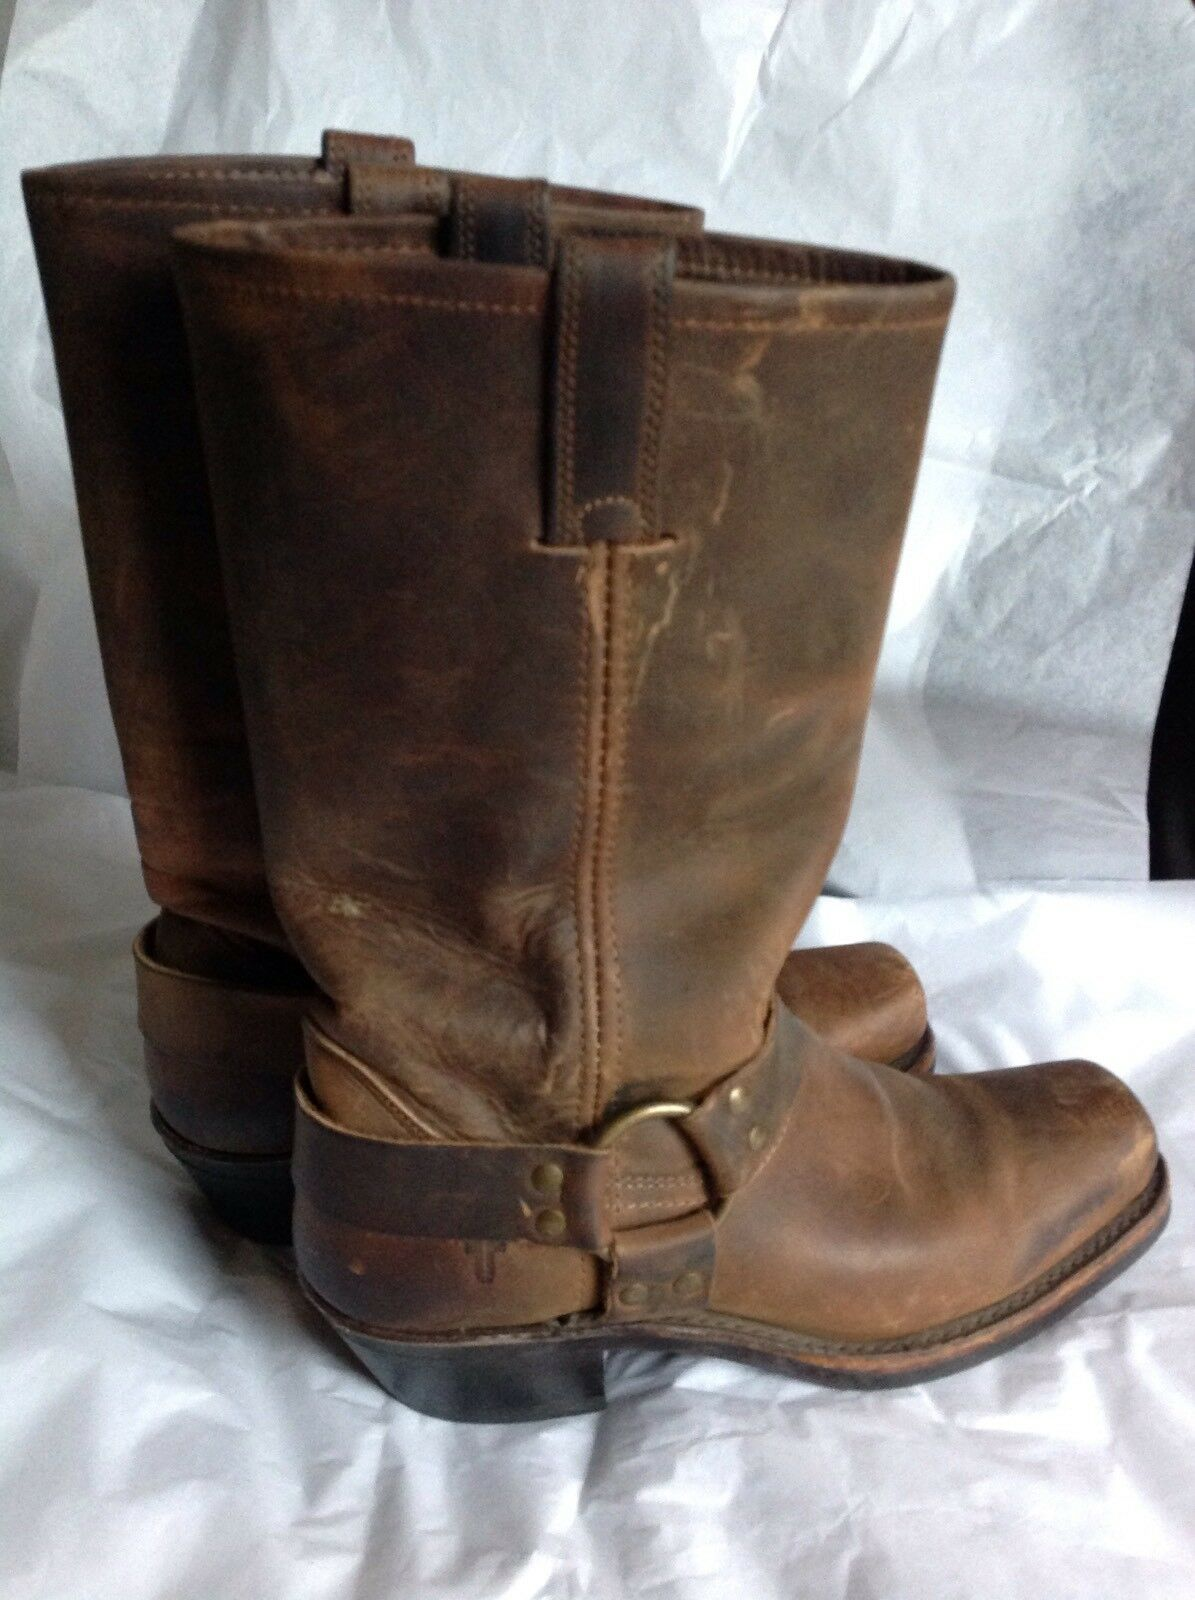 FRYE 77300 Brown Leather Leather Leather Harness Motorcycle Boots Women's Size 9 55cb92